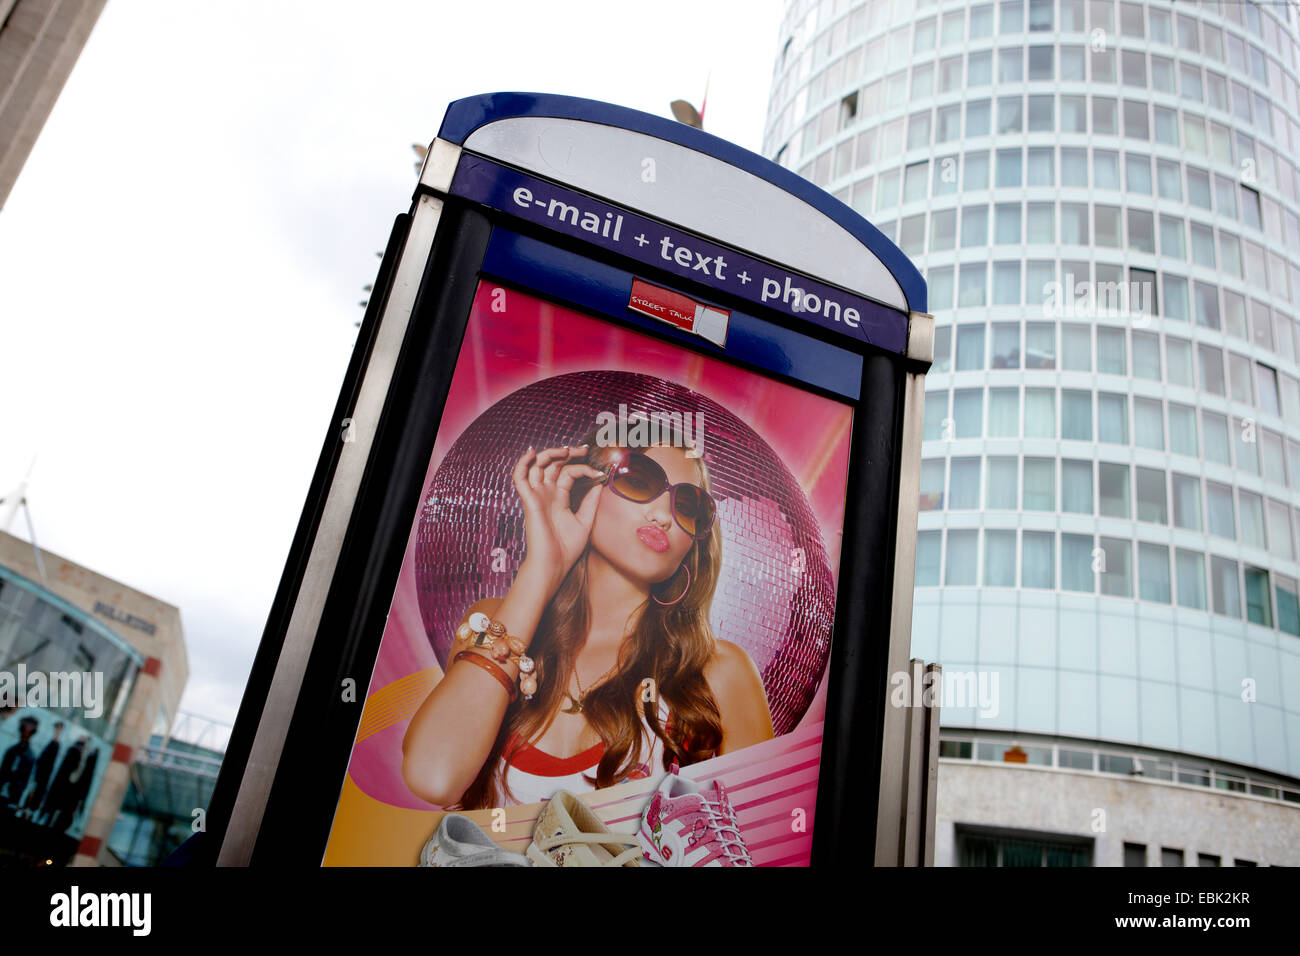 Advertising image on the side of a phone box in central Birmingham with the Rotunda in the background. - Stock Image